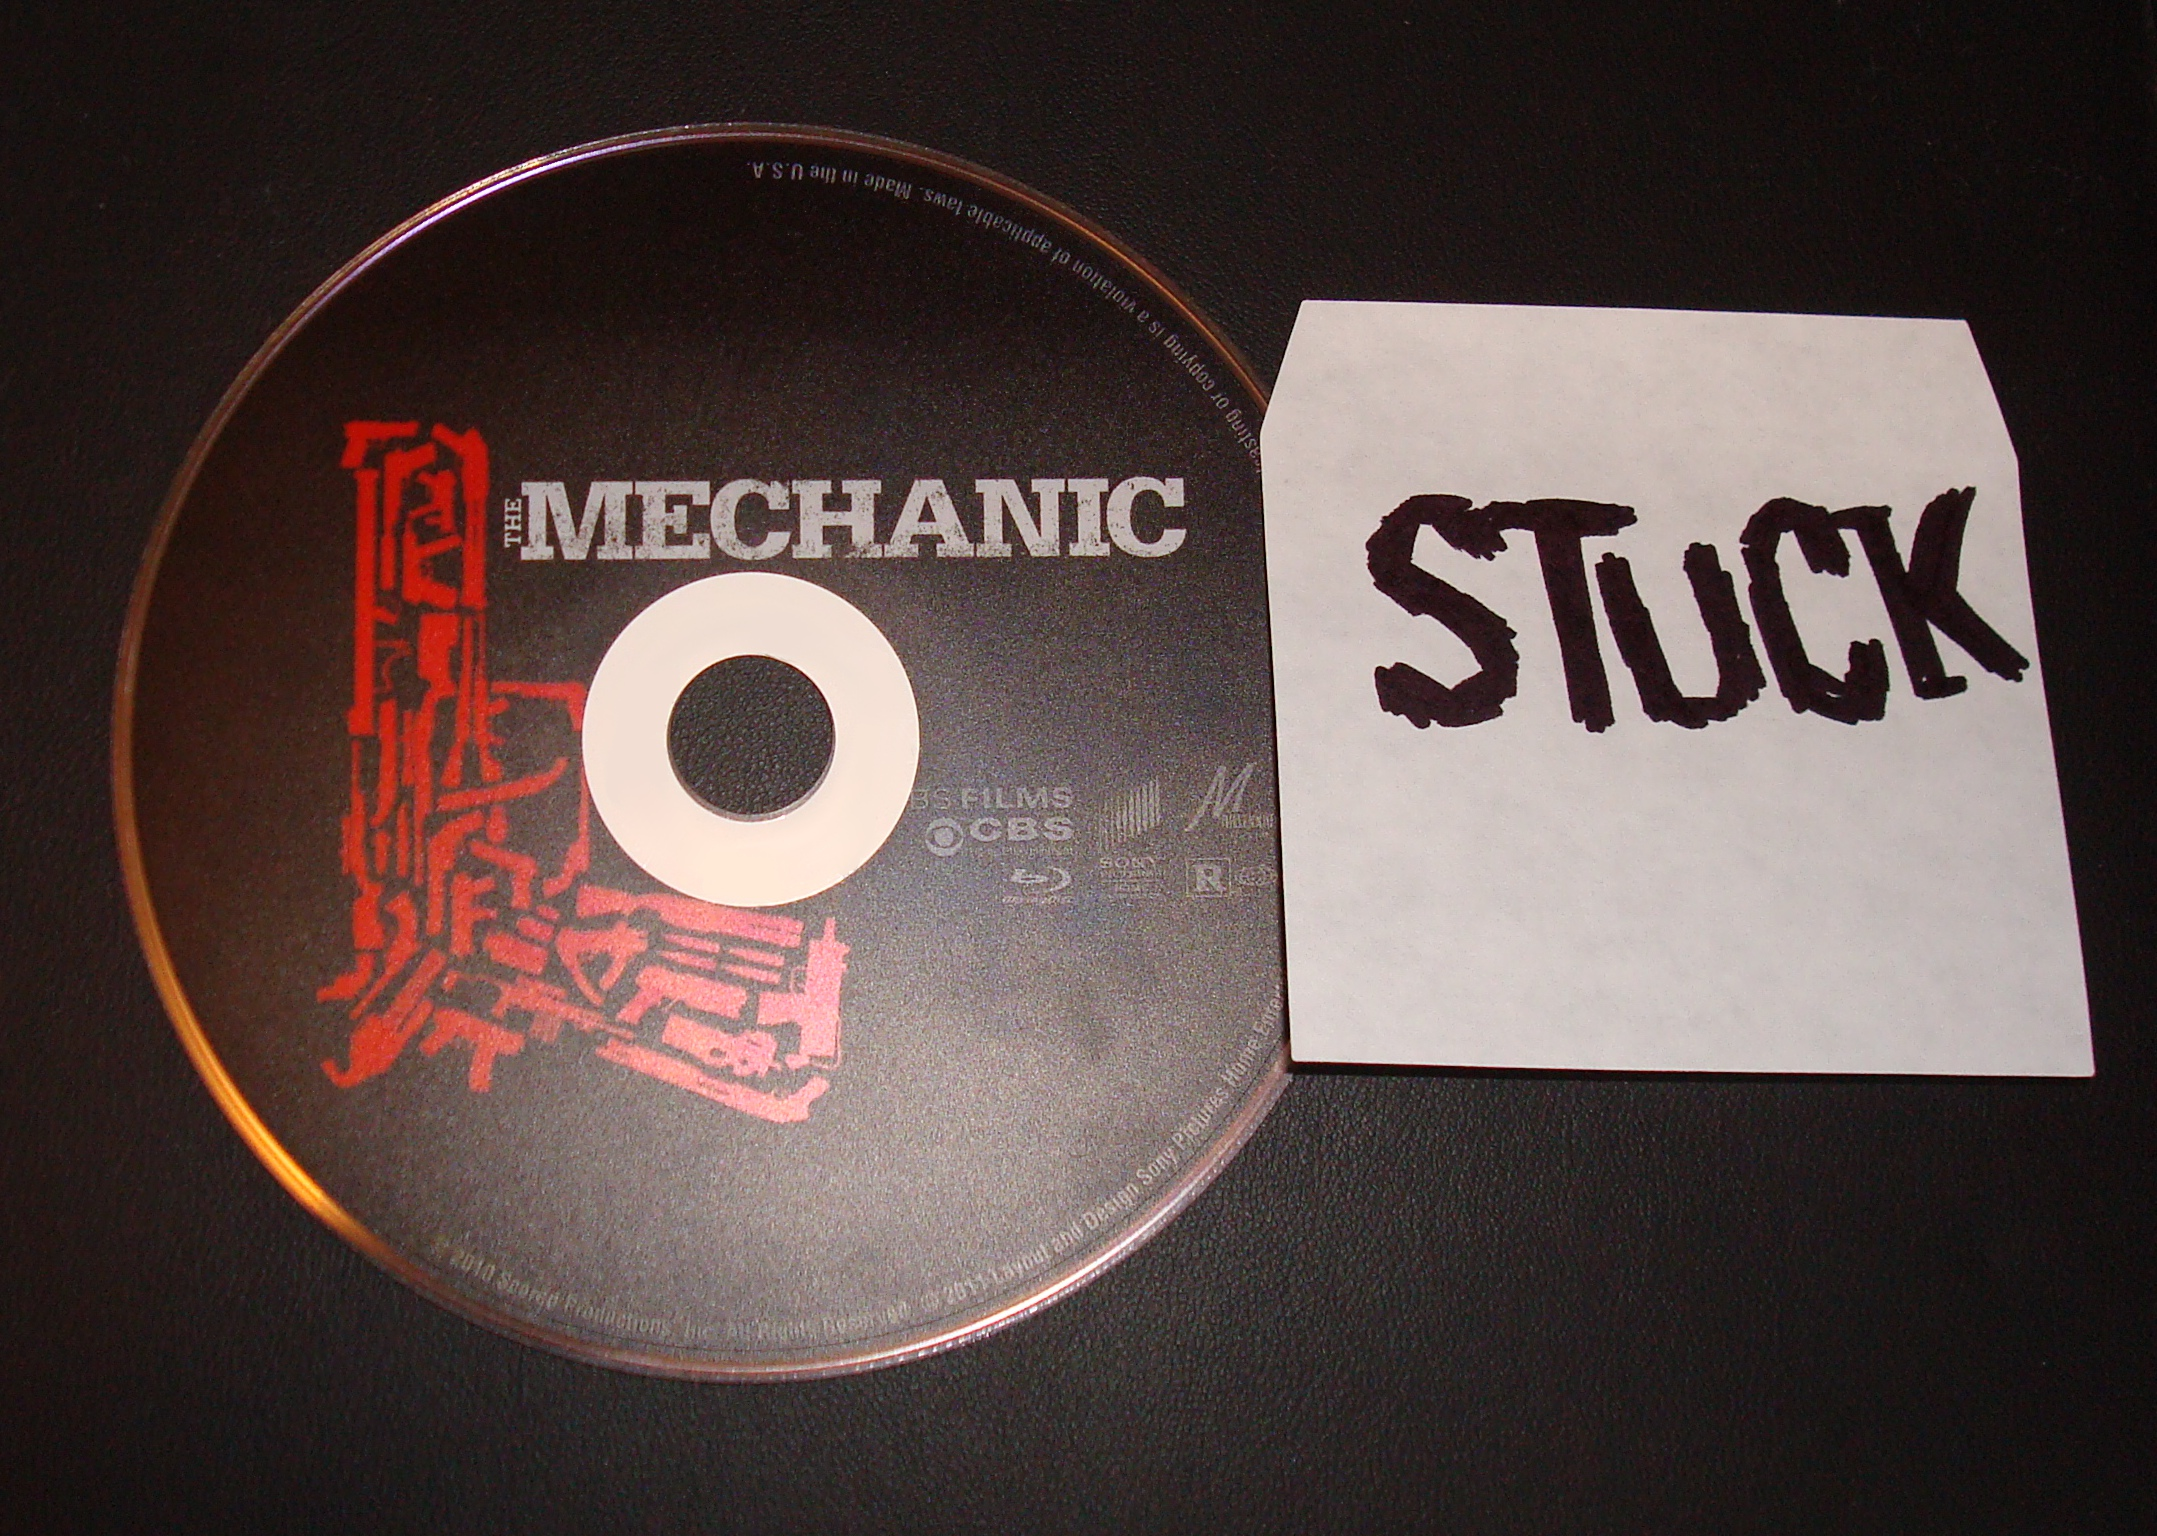 The Mechanic 2011 EXTRAS 720p/1080p Bluray x264-STUCK